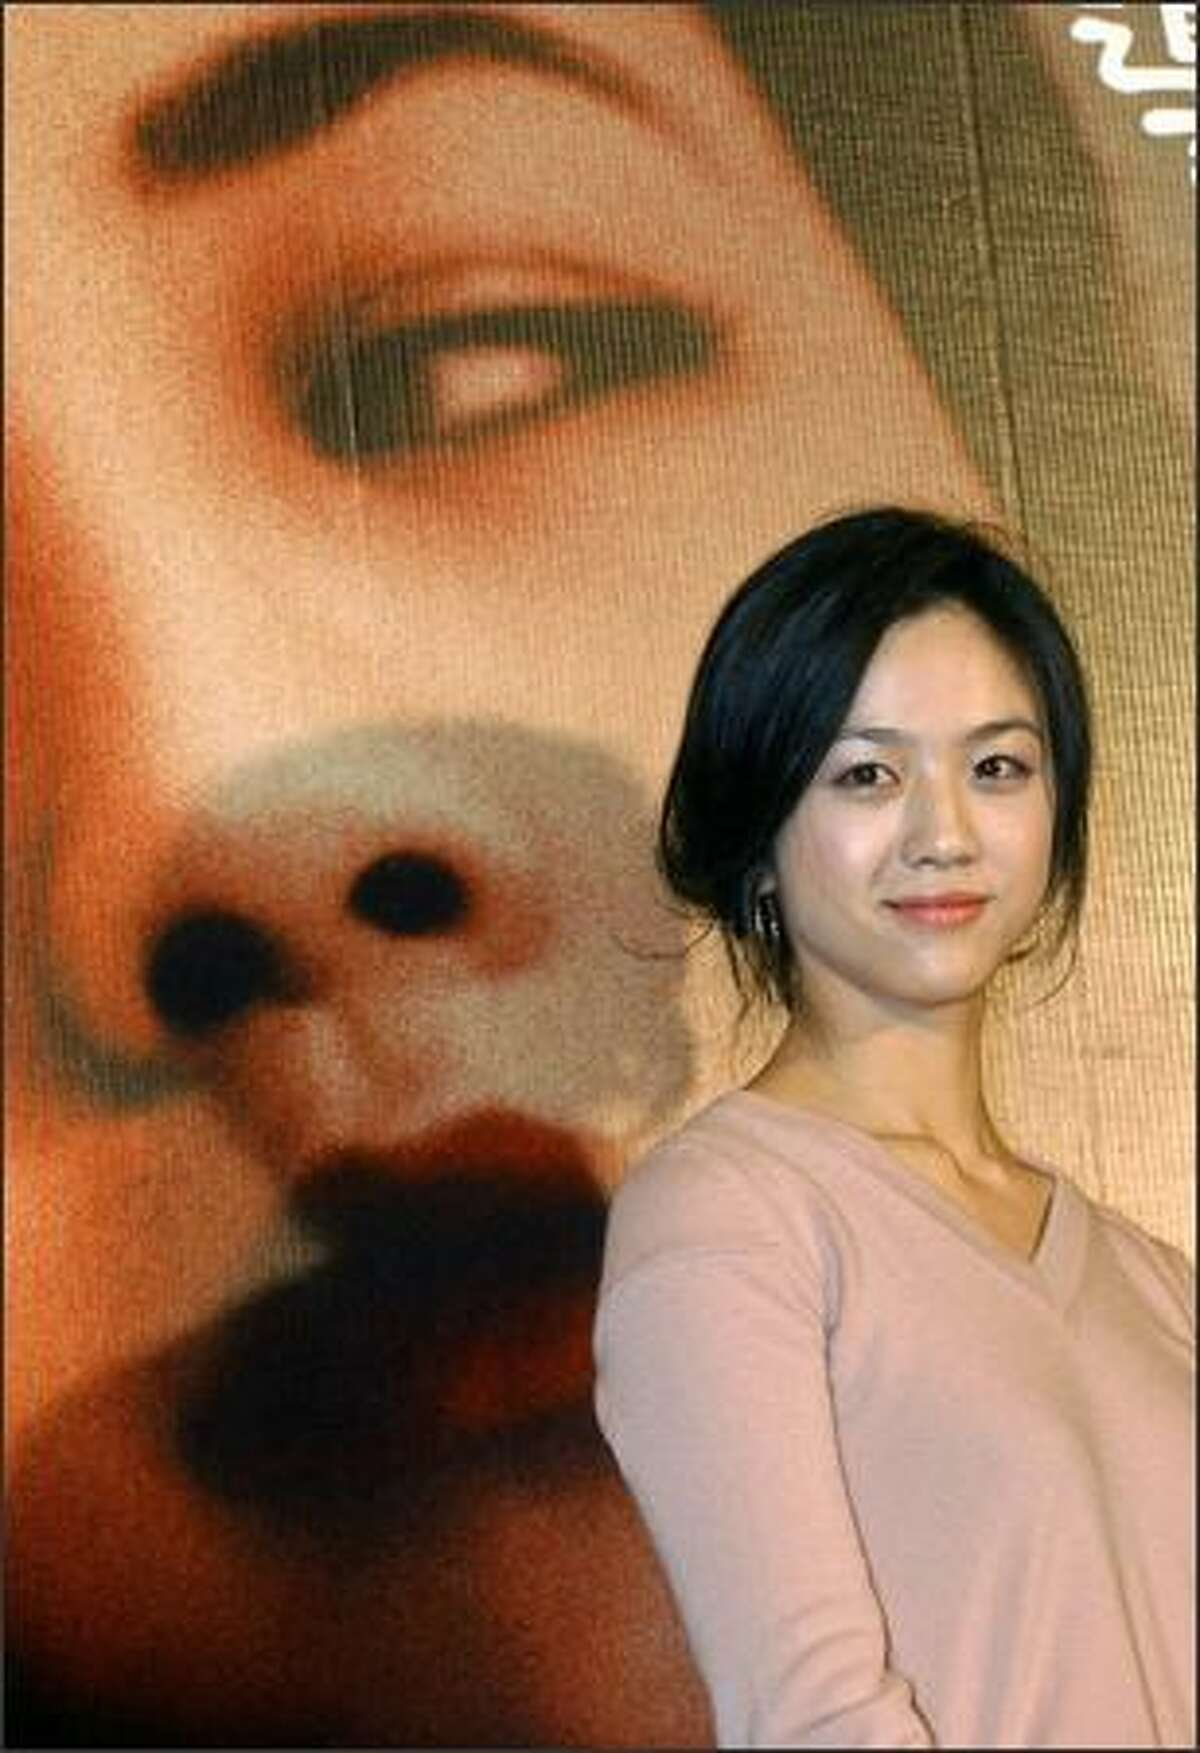 Chinese actress Tang Wei poses for photos during a press conference in Taipei, 24 September 2007, hours before the local premiere of Director Ang Lee's award-winning film